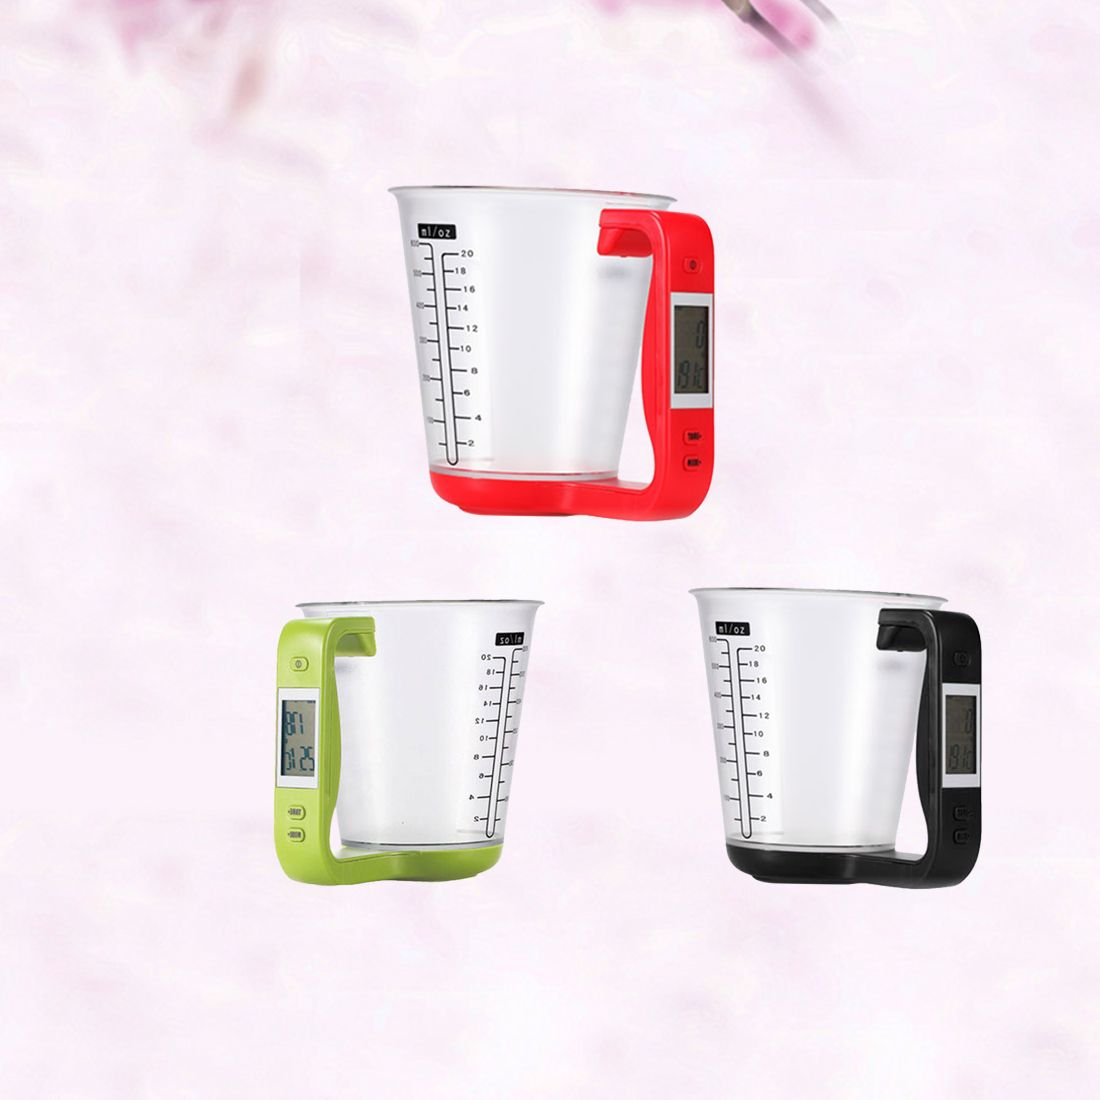 1Pcs Digital kitchen Electronic Measuring Cup <font><b>Scale</b></font> Household Jug <font><b>Scales</b></font> with LCD Display Temp Measurement 16x12.5x13.5cm